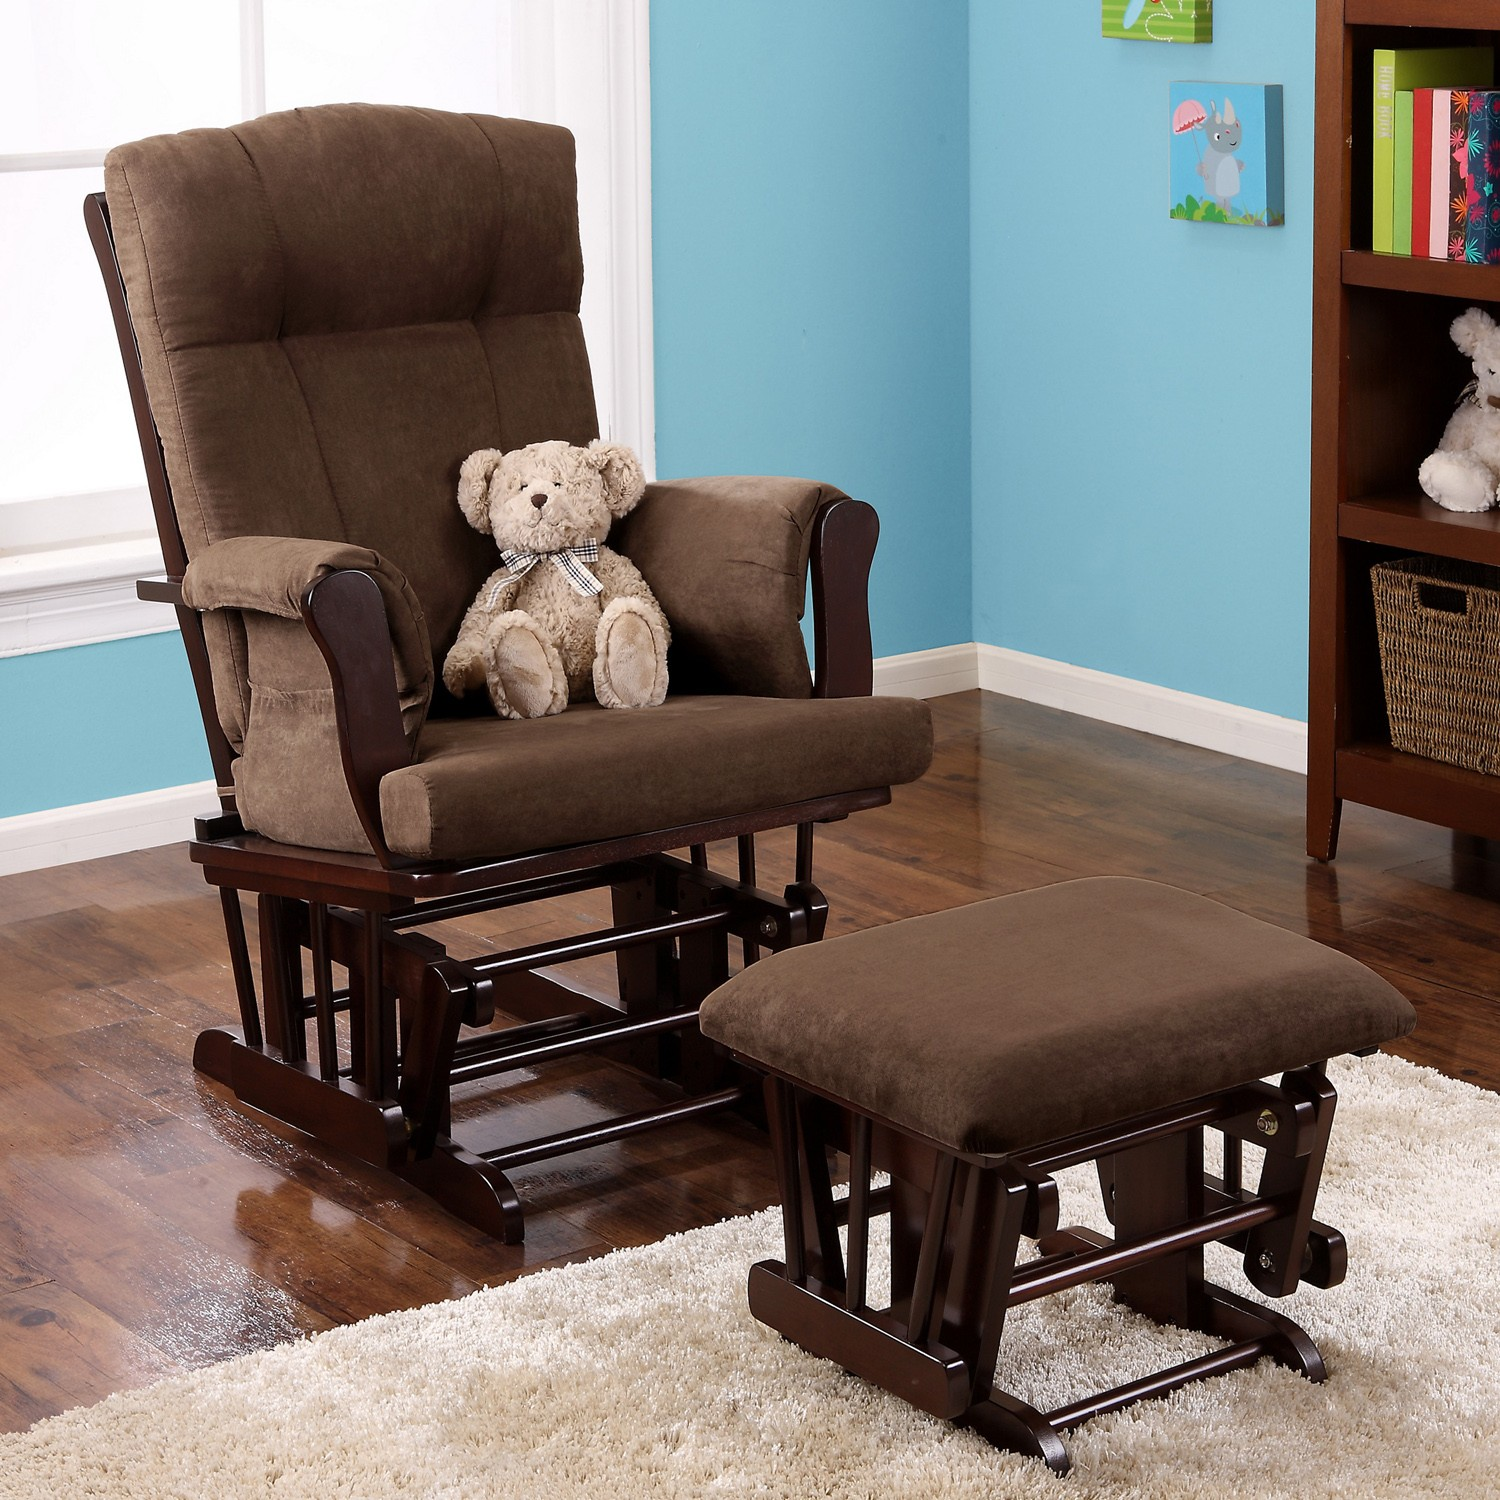 Image of: glider rocking chair ideas